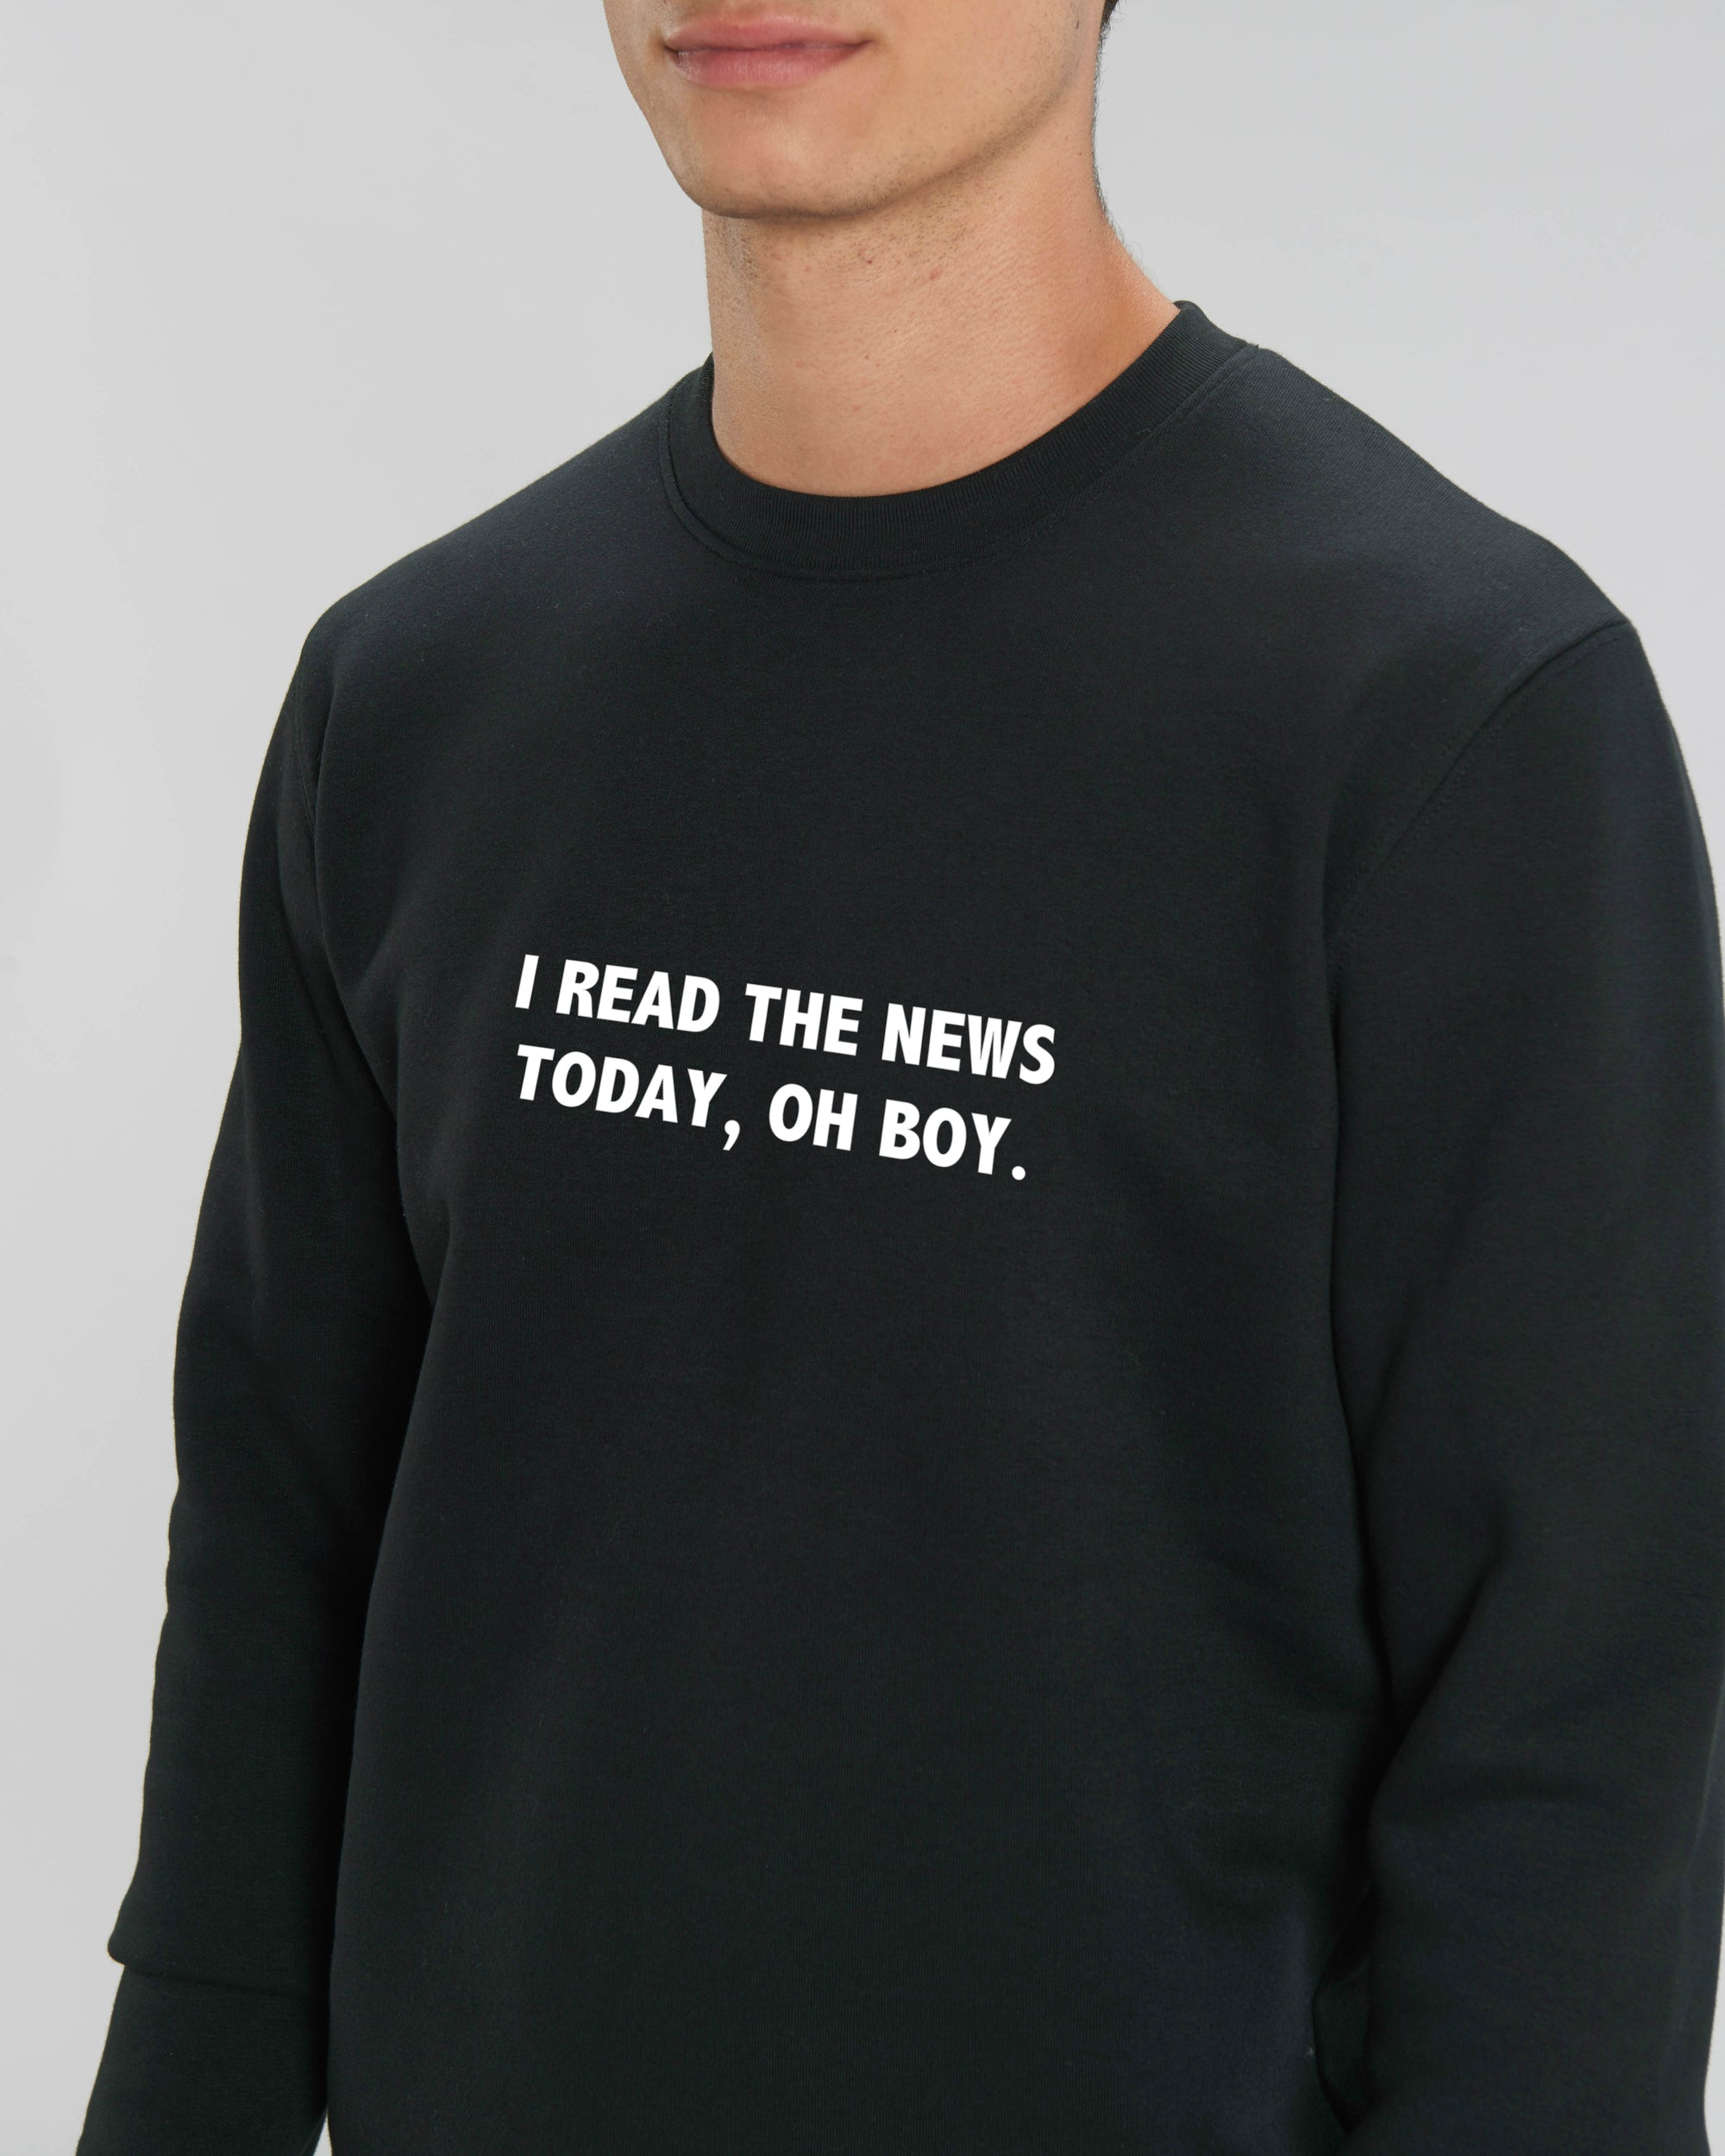 'I READ THE NEWS TODAY, OH BOY' EMBROIDERED ORGANIC COTTON UNISEX SWEATSHIRT